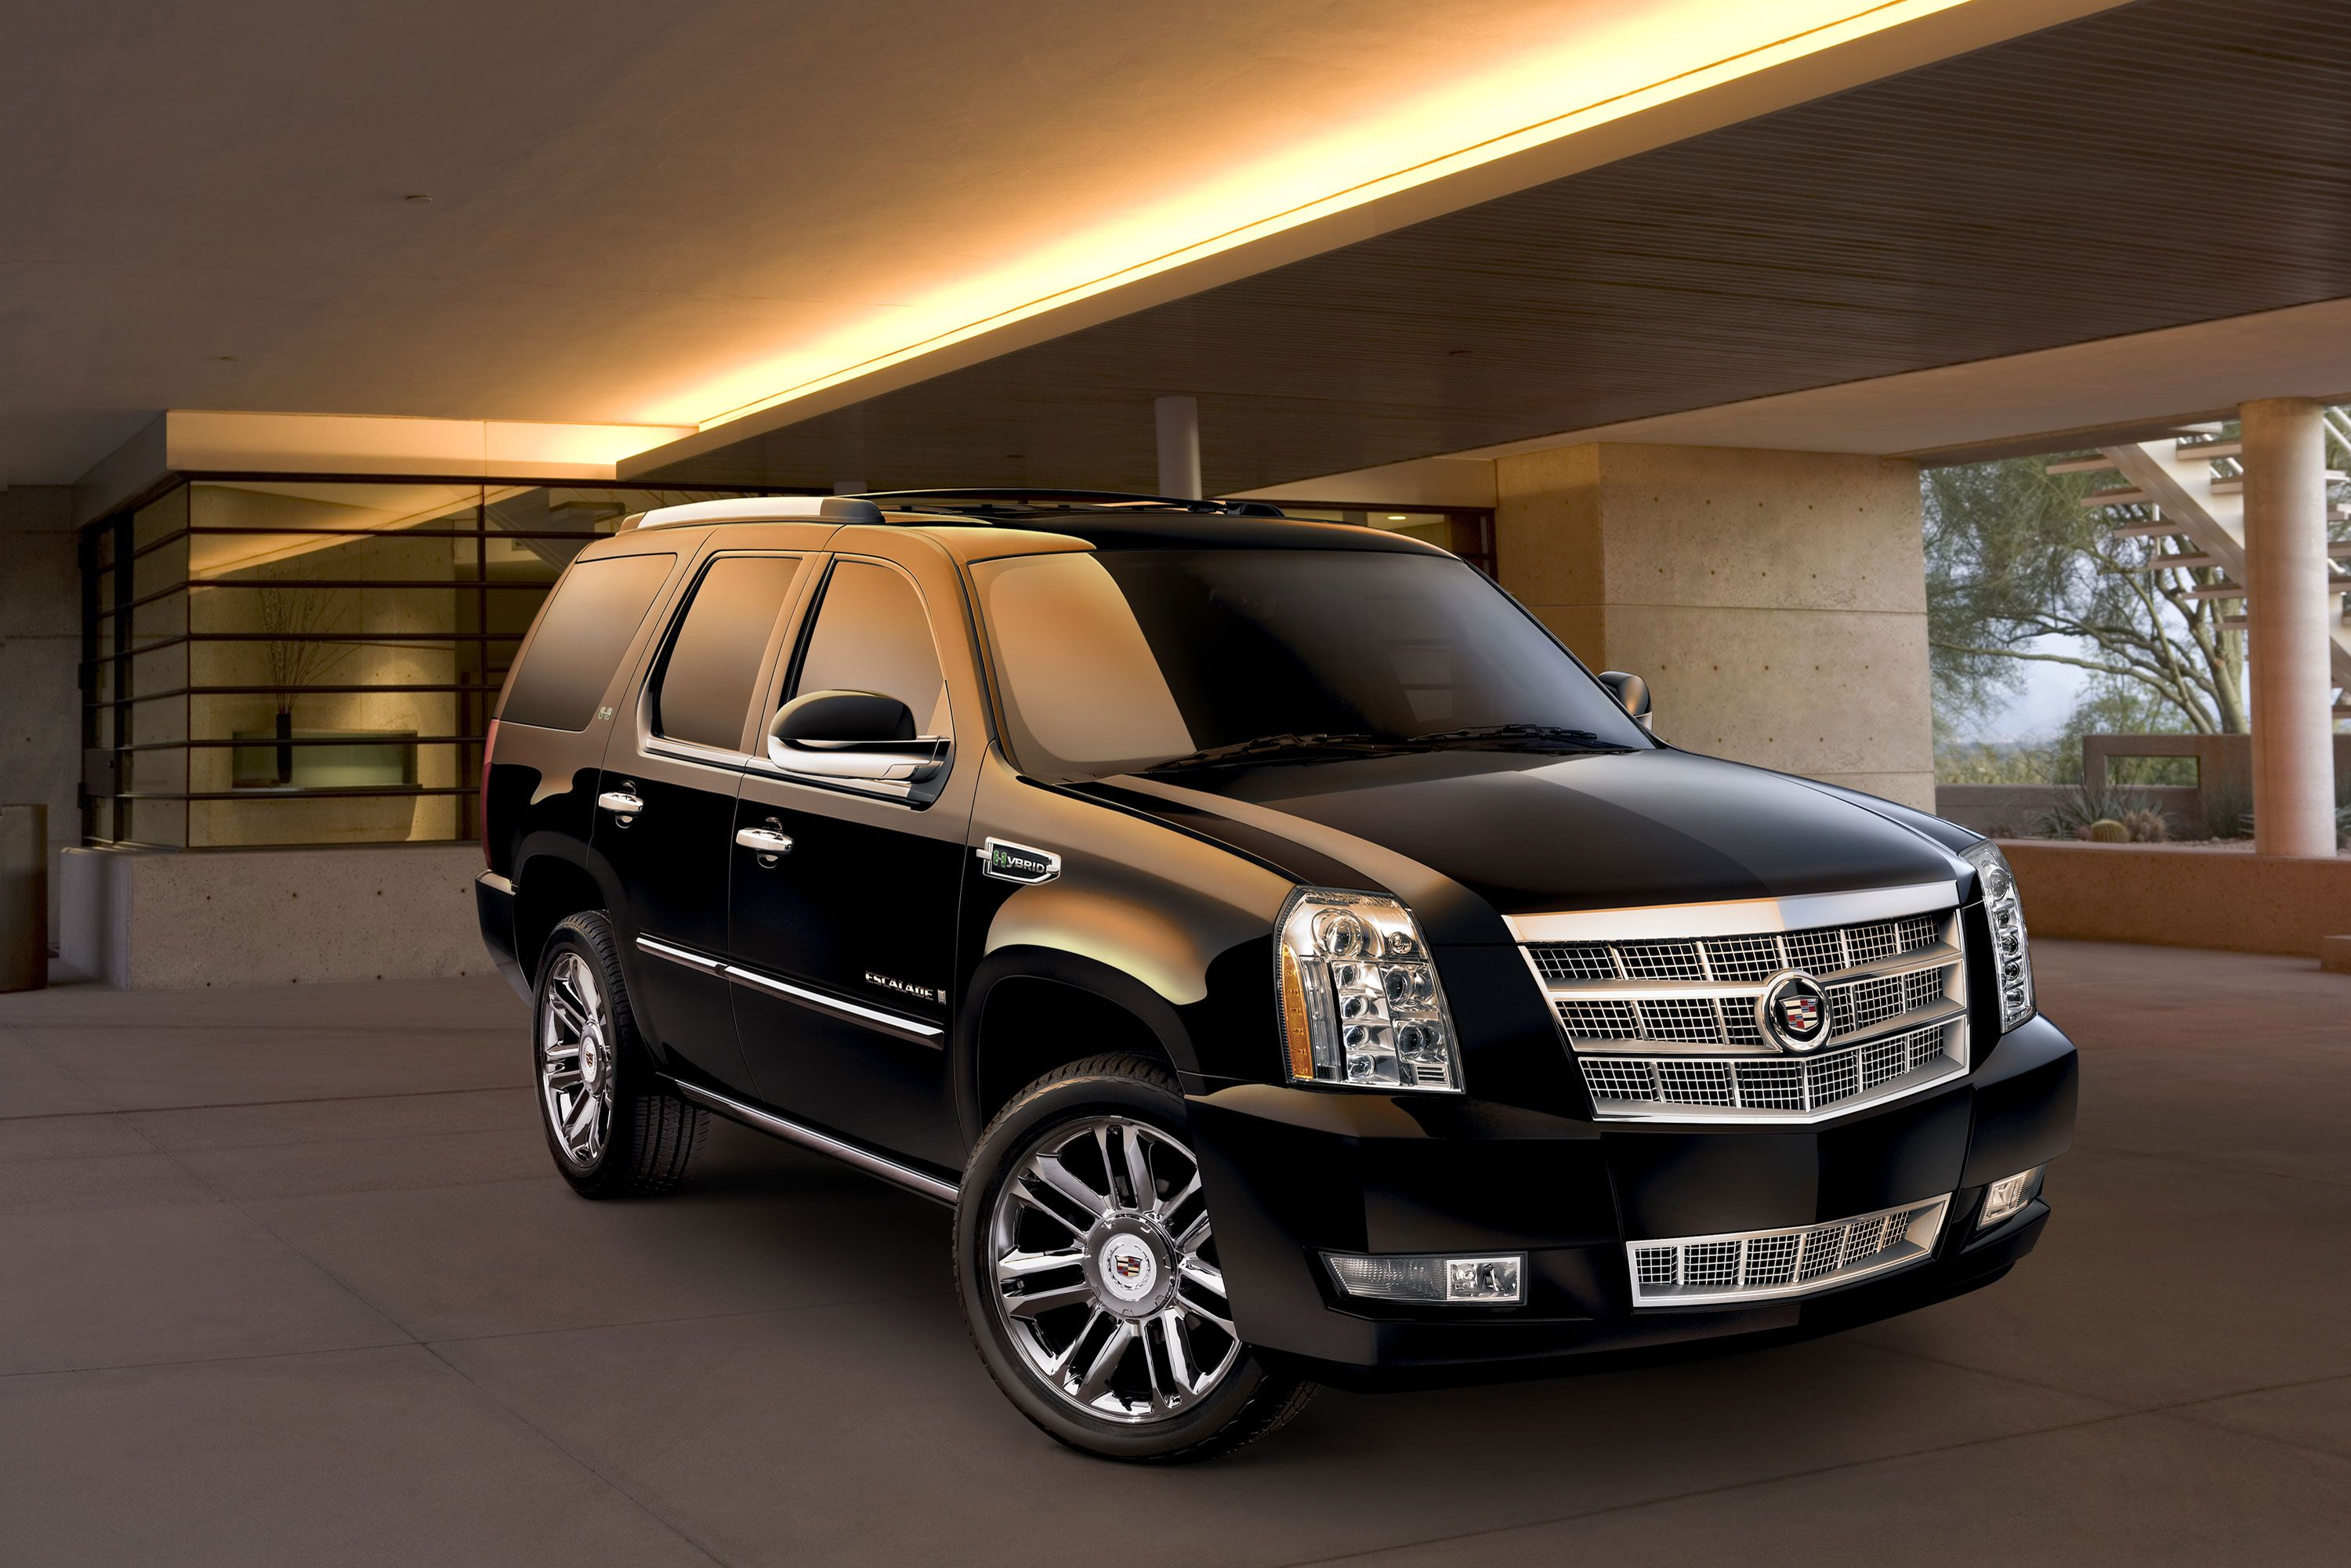 premium image cadillac of a sale escalade vicari house auction for at esv auctions